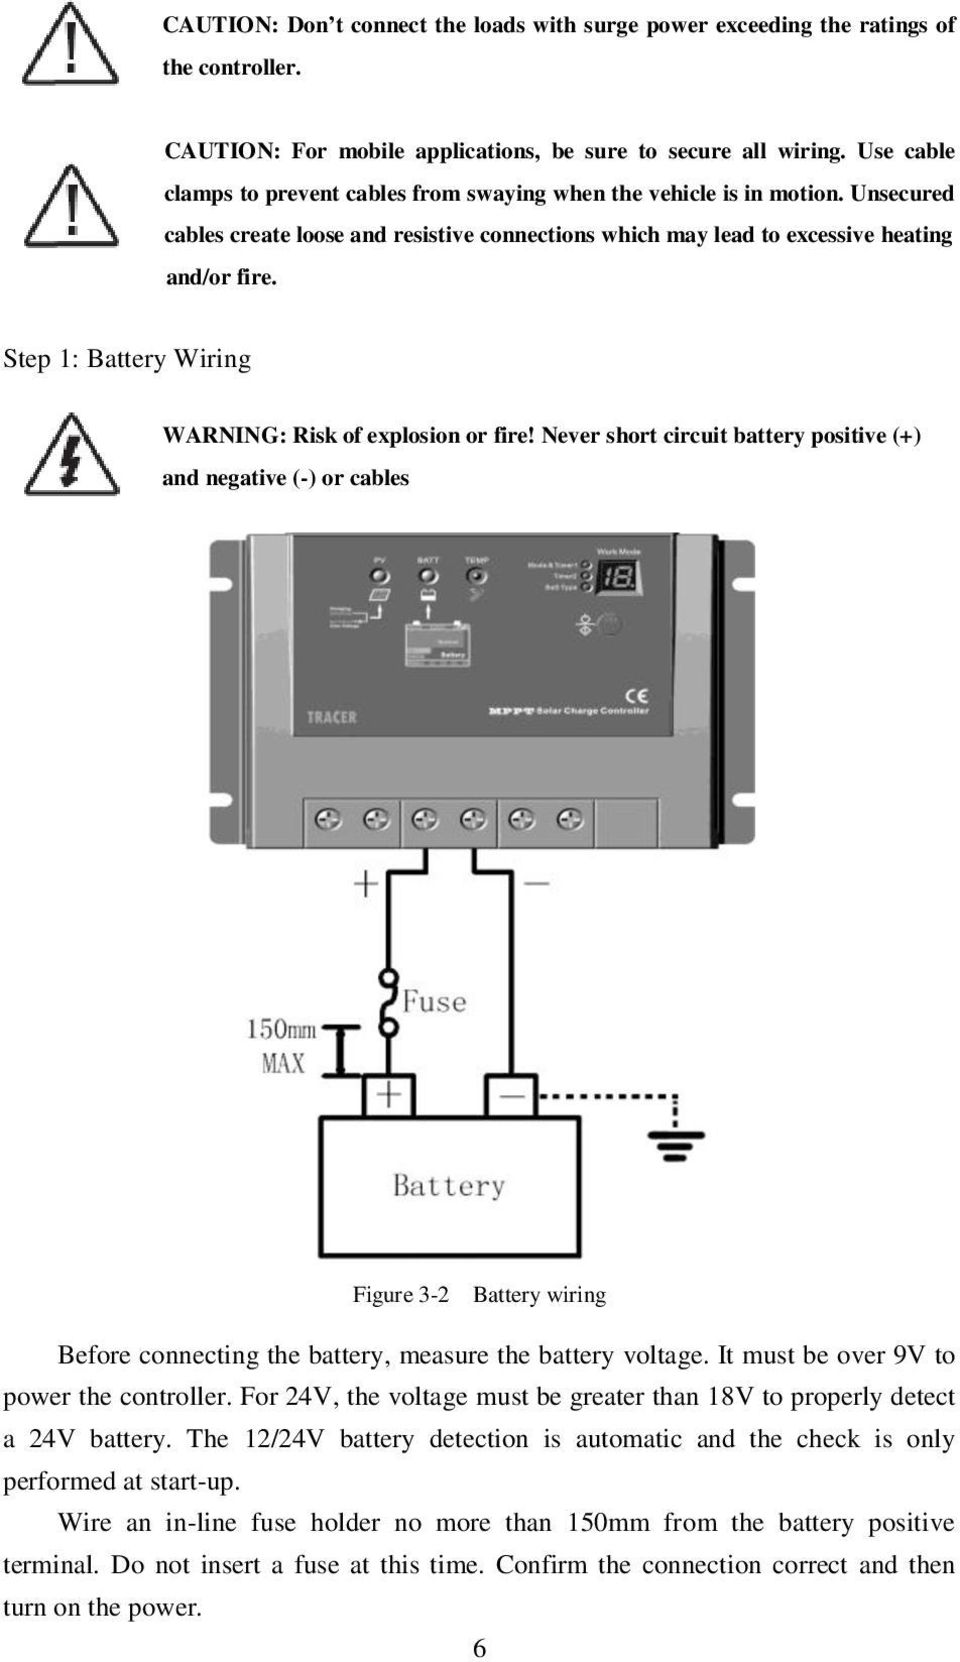 Instruction Manual Epsolar Tracer 2210rn 2215rn Maximum Power Controller Wiring Schematic Also Mppt Solar Charge Circuit Step 1 Battery Warning Risk Of Explosion Or Fire